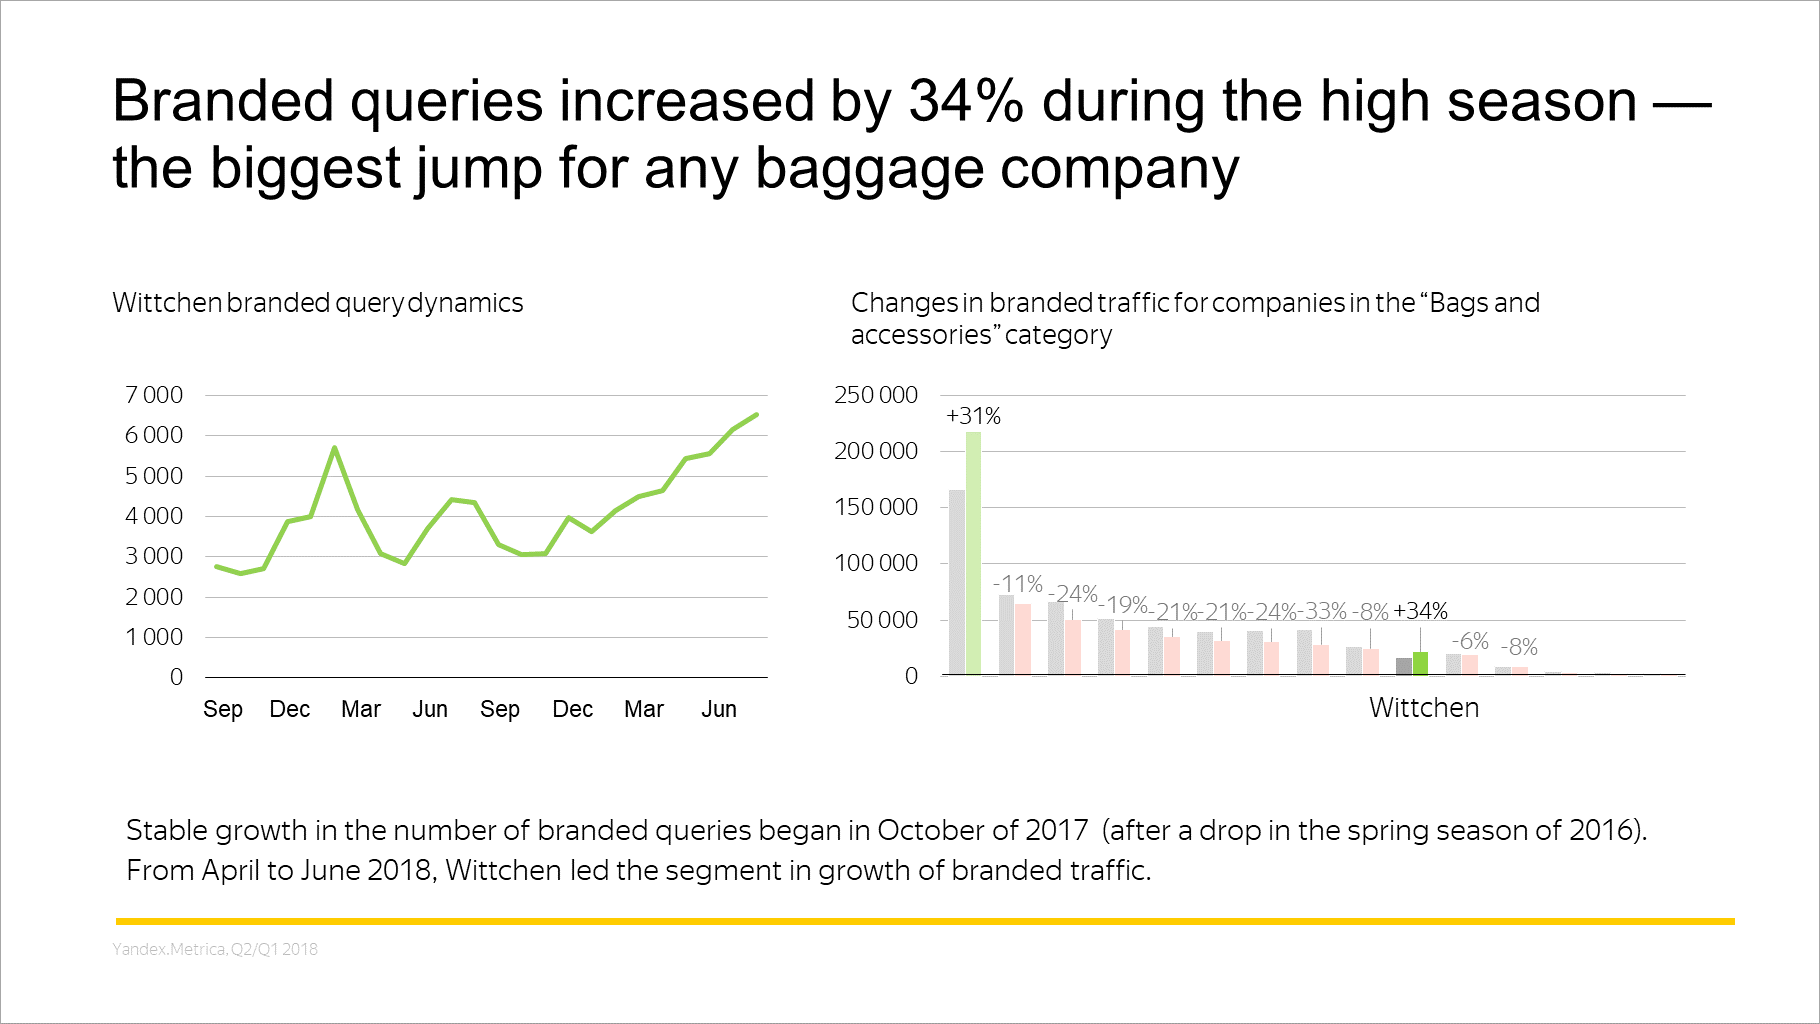 Branded queries increased by 34% during the high season — the biggest jump for any baggage company